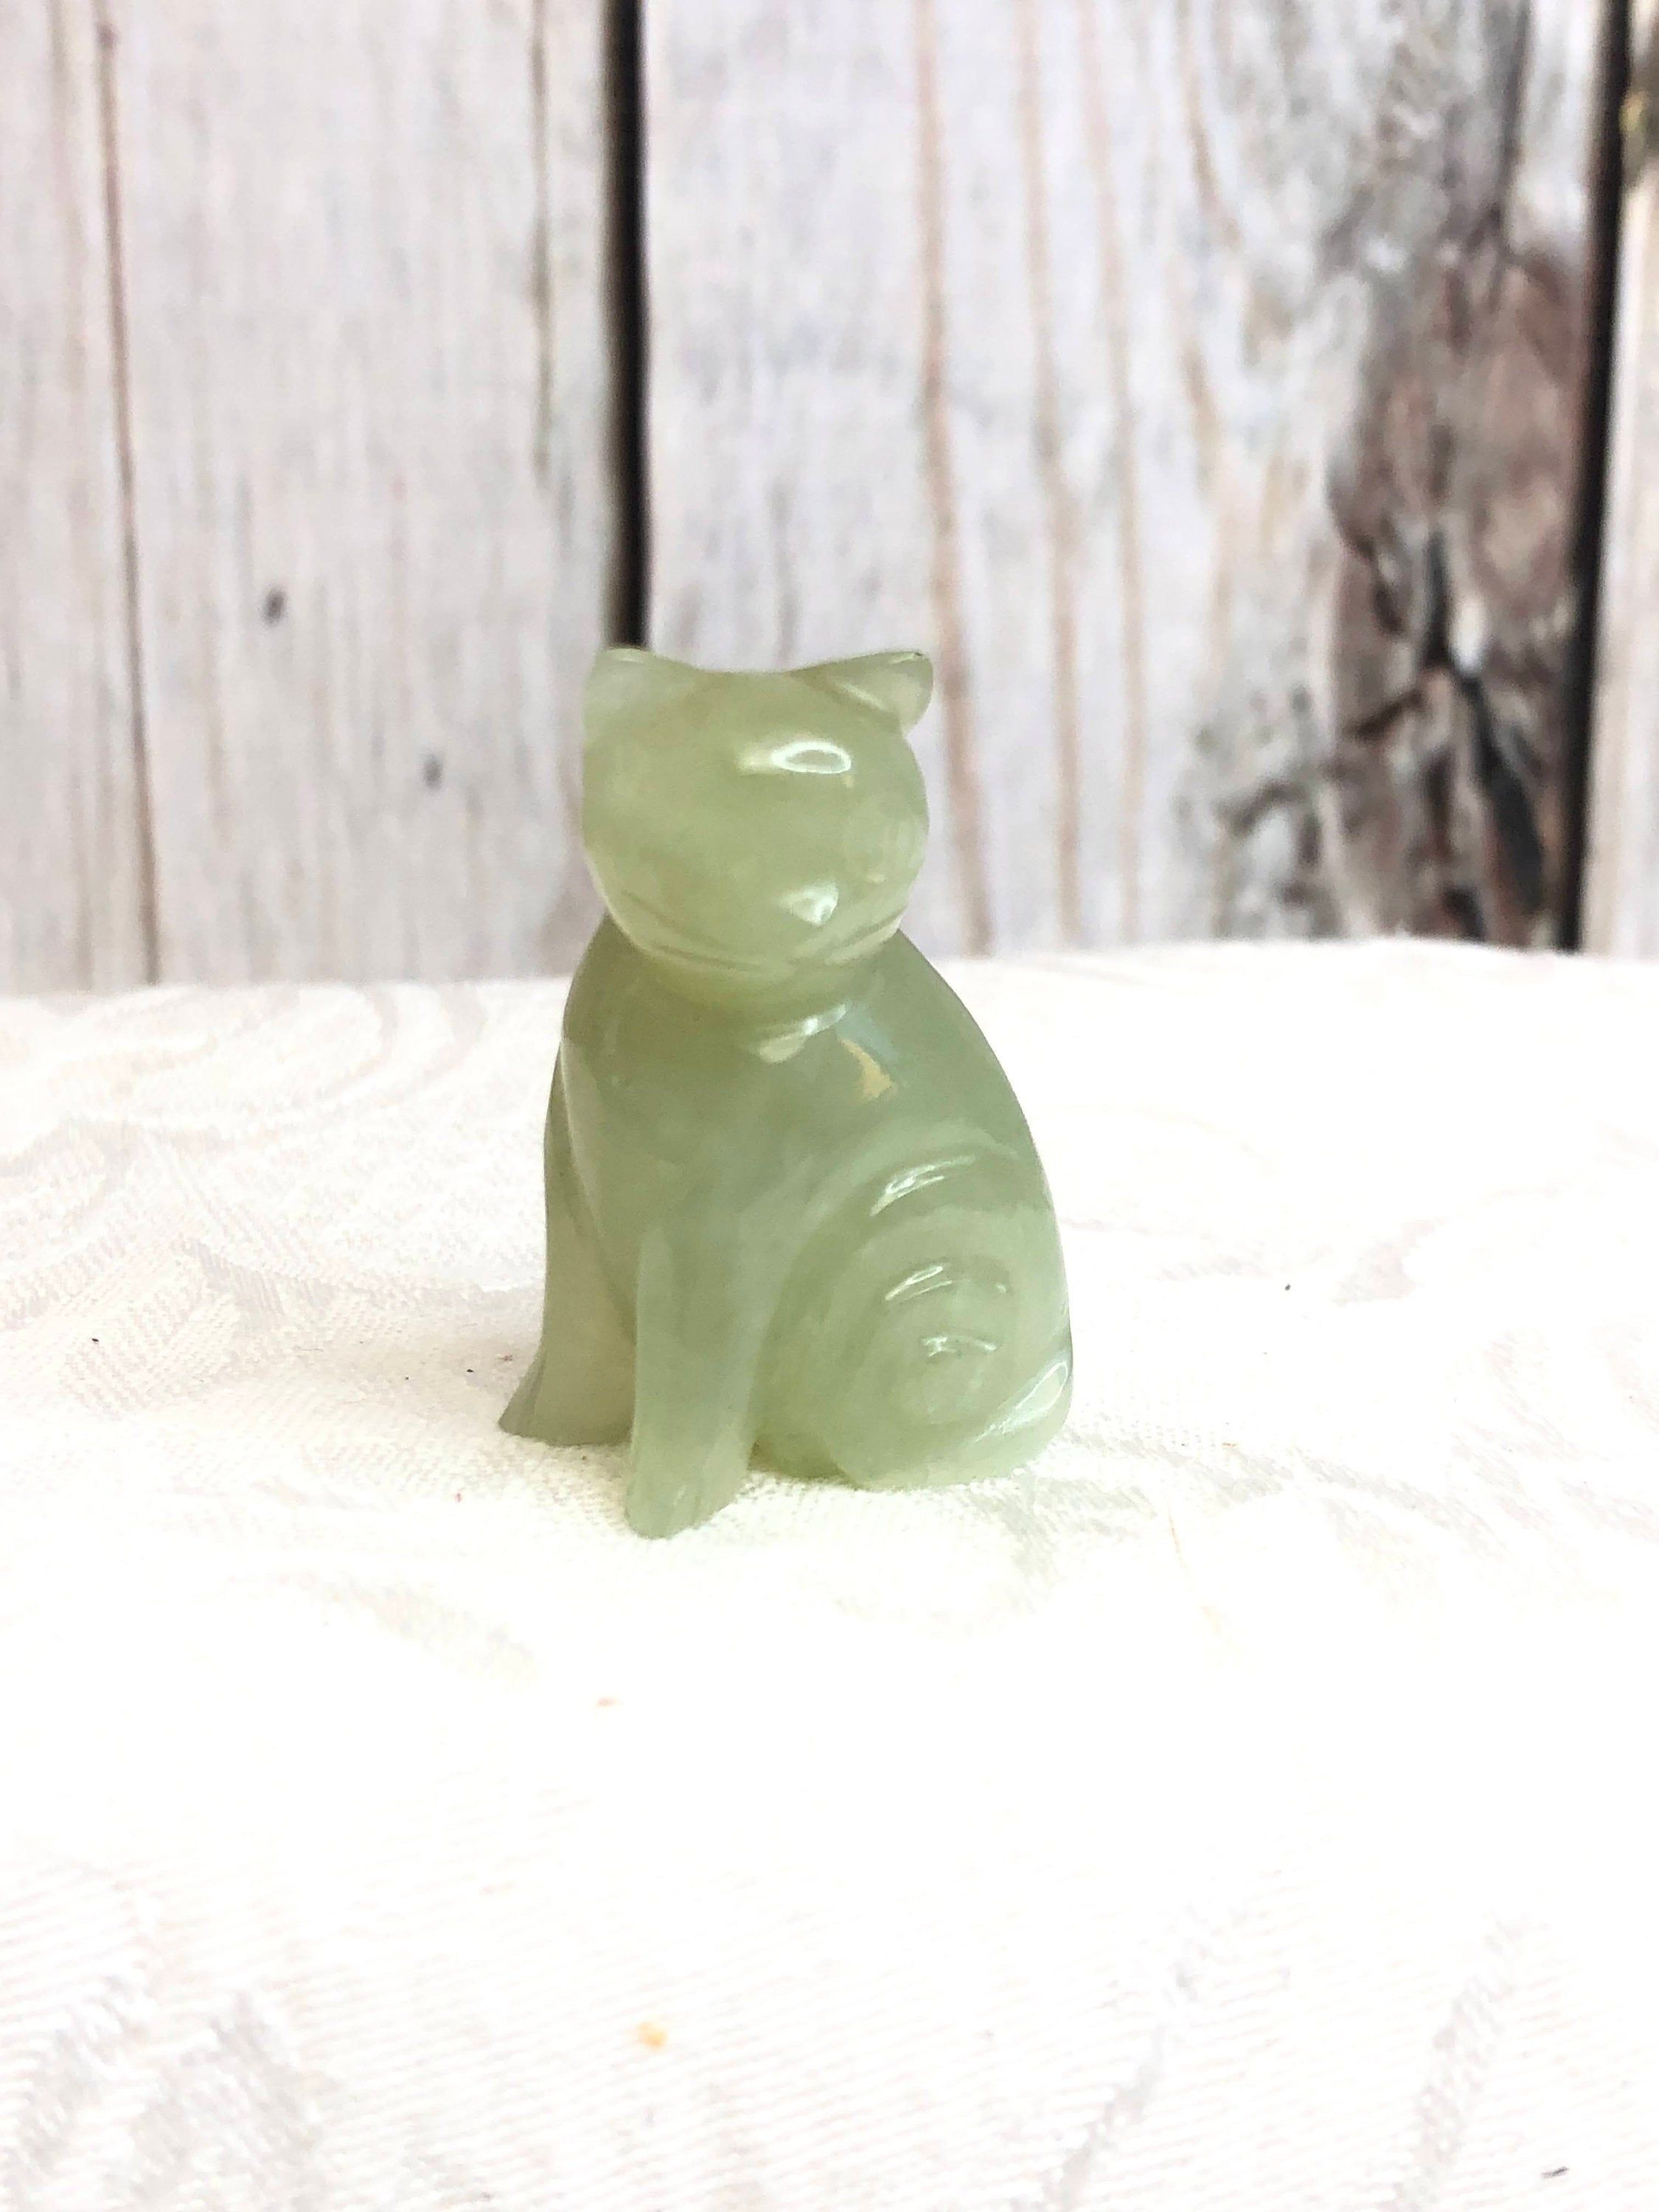 Vintage Carved Jade Cat Gemstone Light Green Kitty Kitten Hand Etsy In 2020 Jade Carving Gemstones Unique Items Products